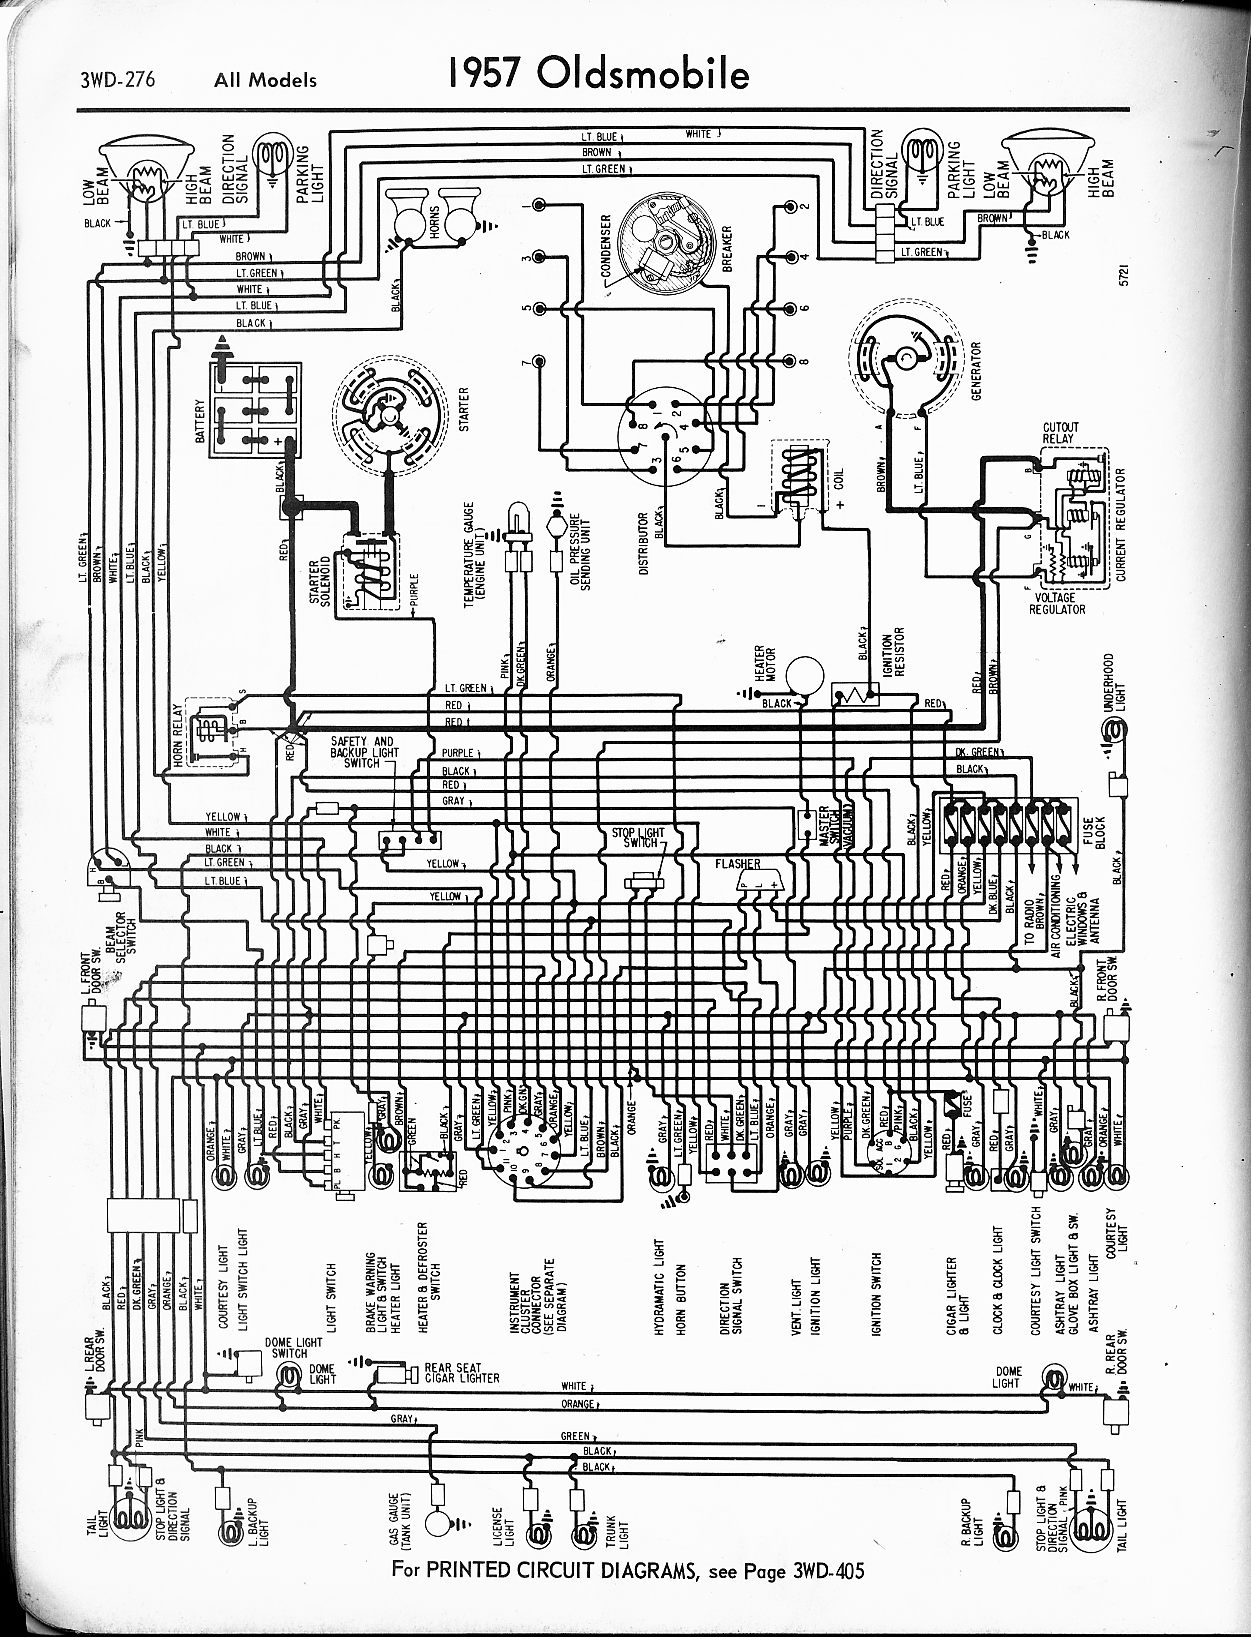 82 camaro engine bay wiring diagram schematic 82 oldsmobile 98 regency wiring diagram